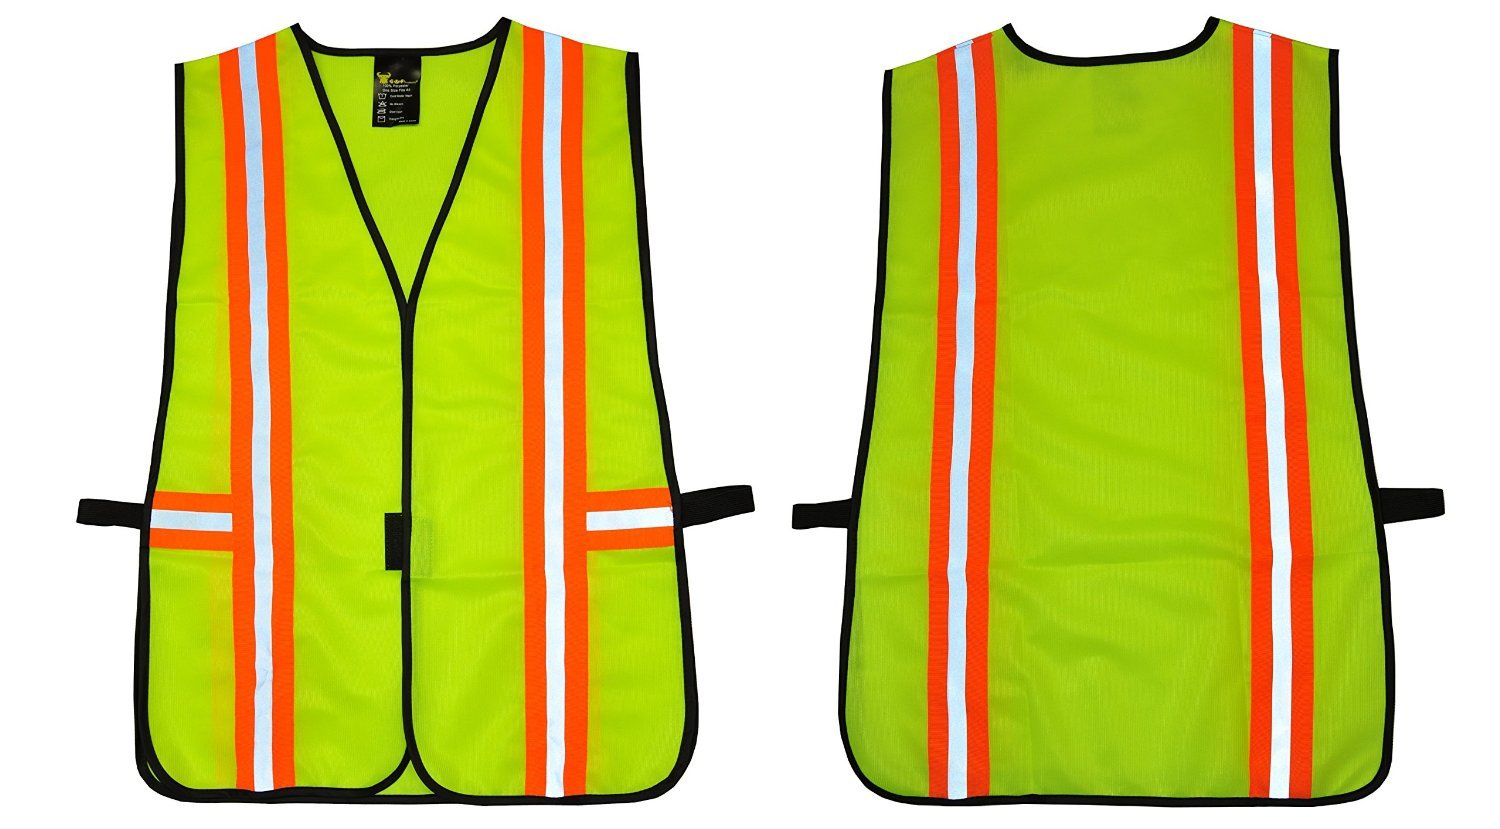 41112 Industrial Safety Reflective Stripes